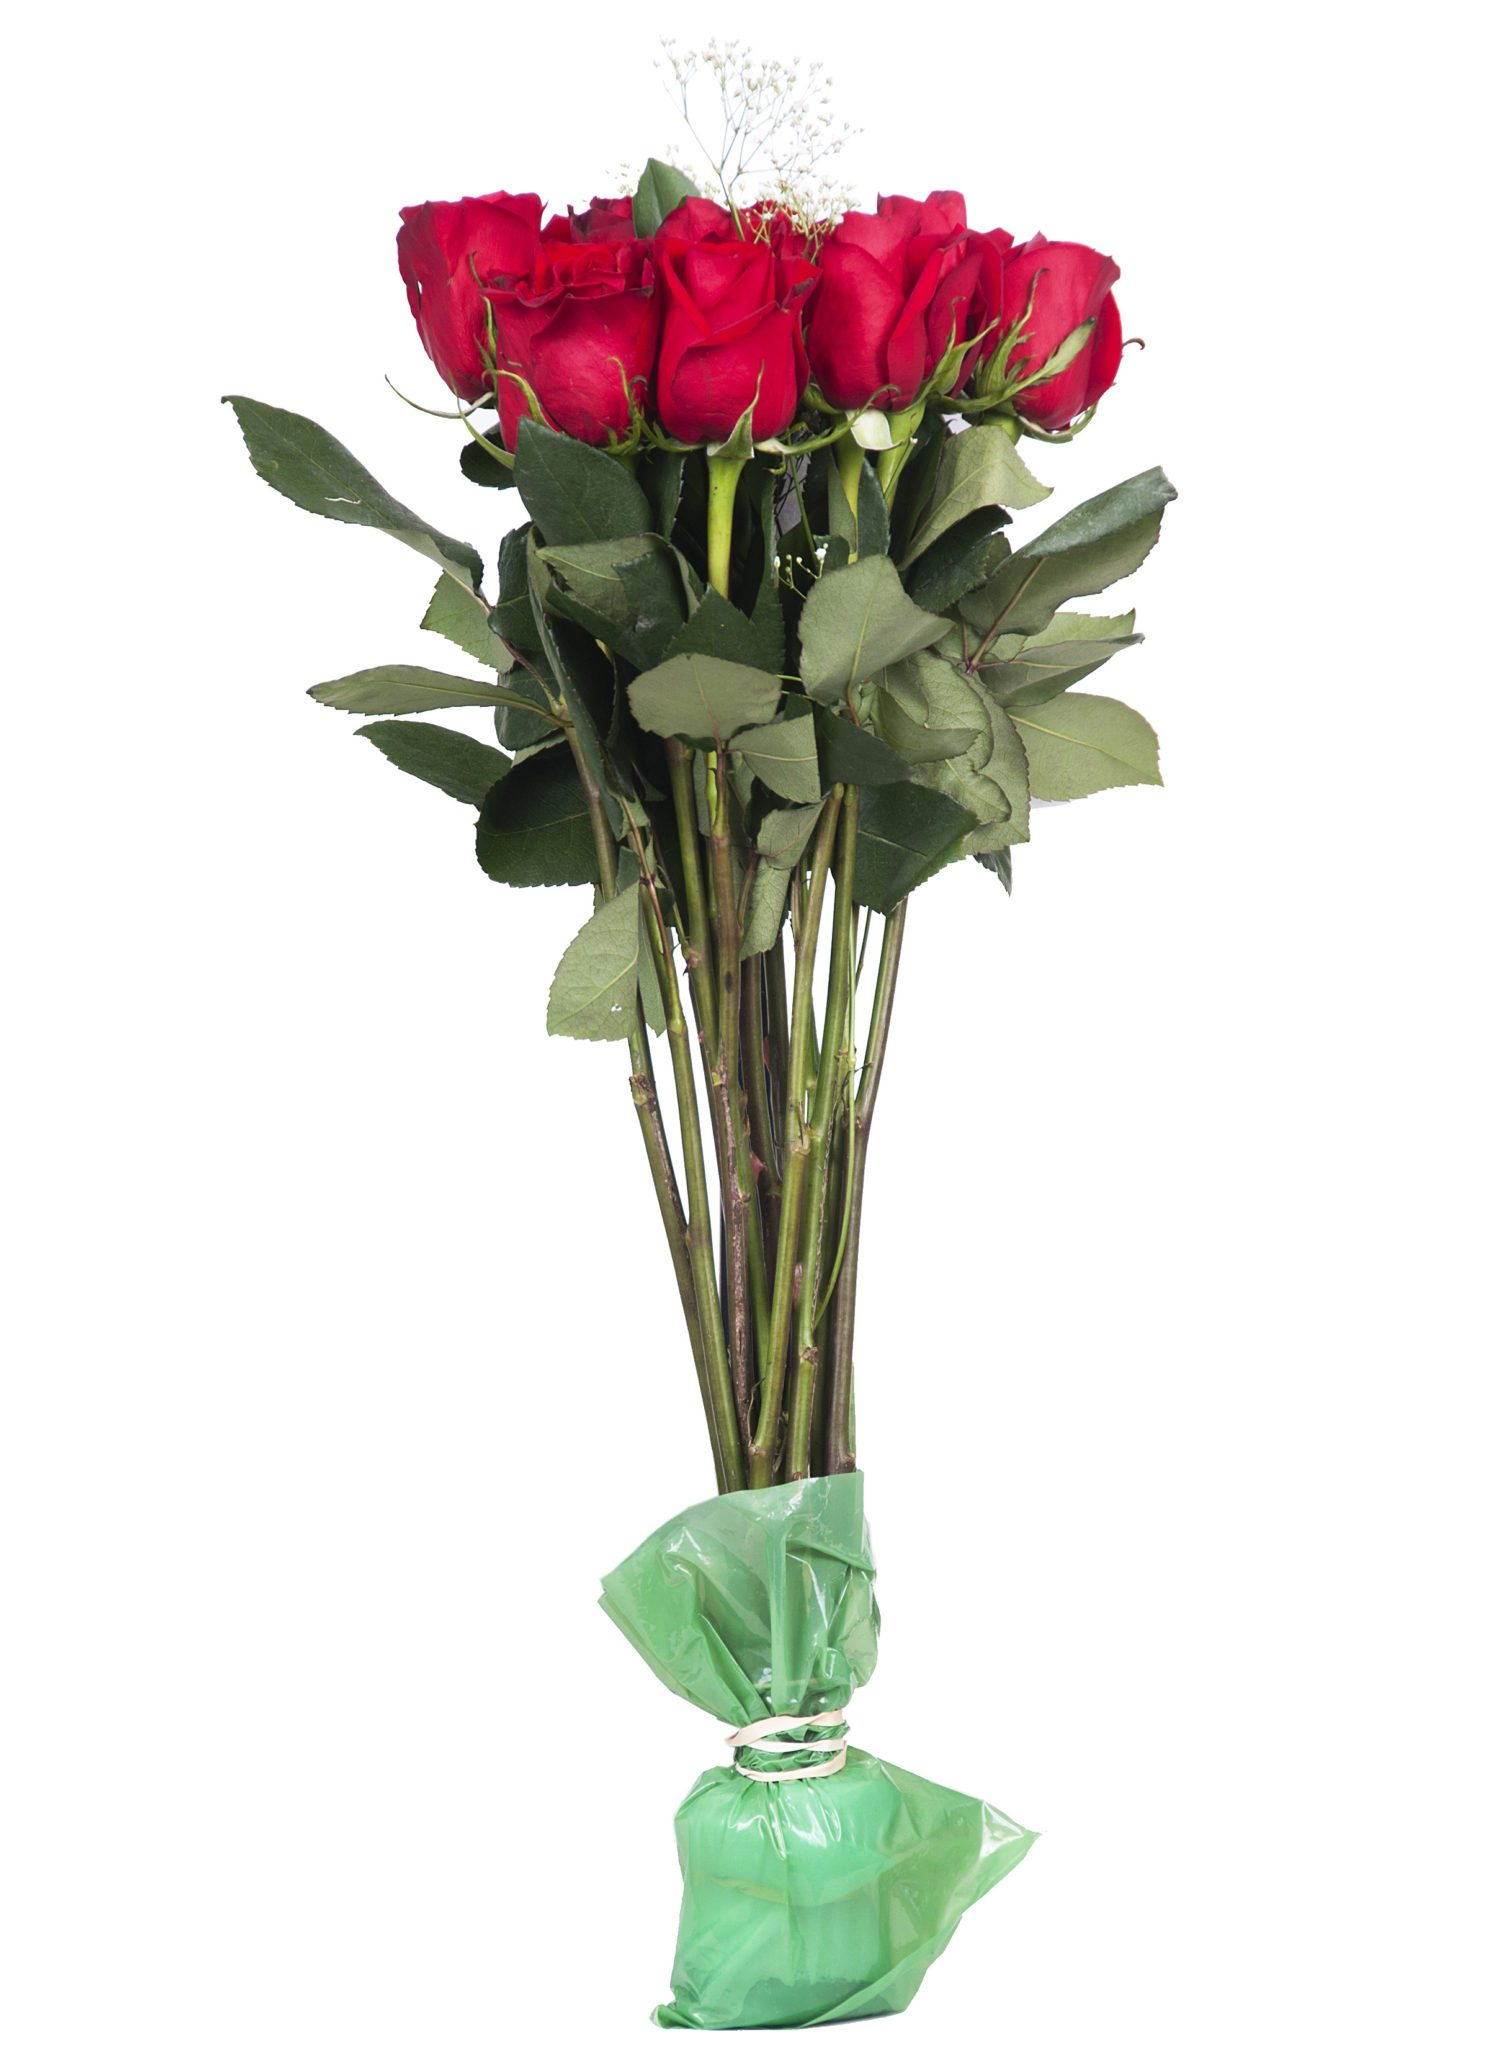 Chrysal cleaner chrysal flower food increasing the vase life of your flowers after valentines day reviewsmspy